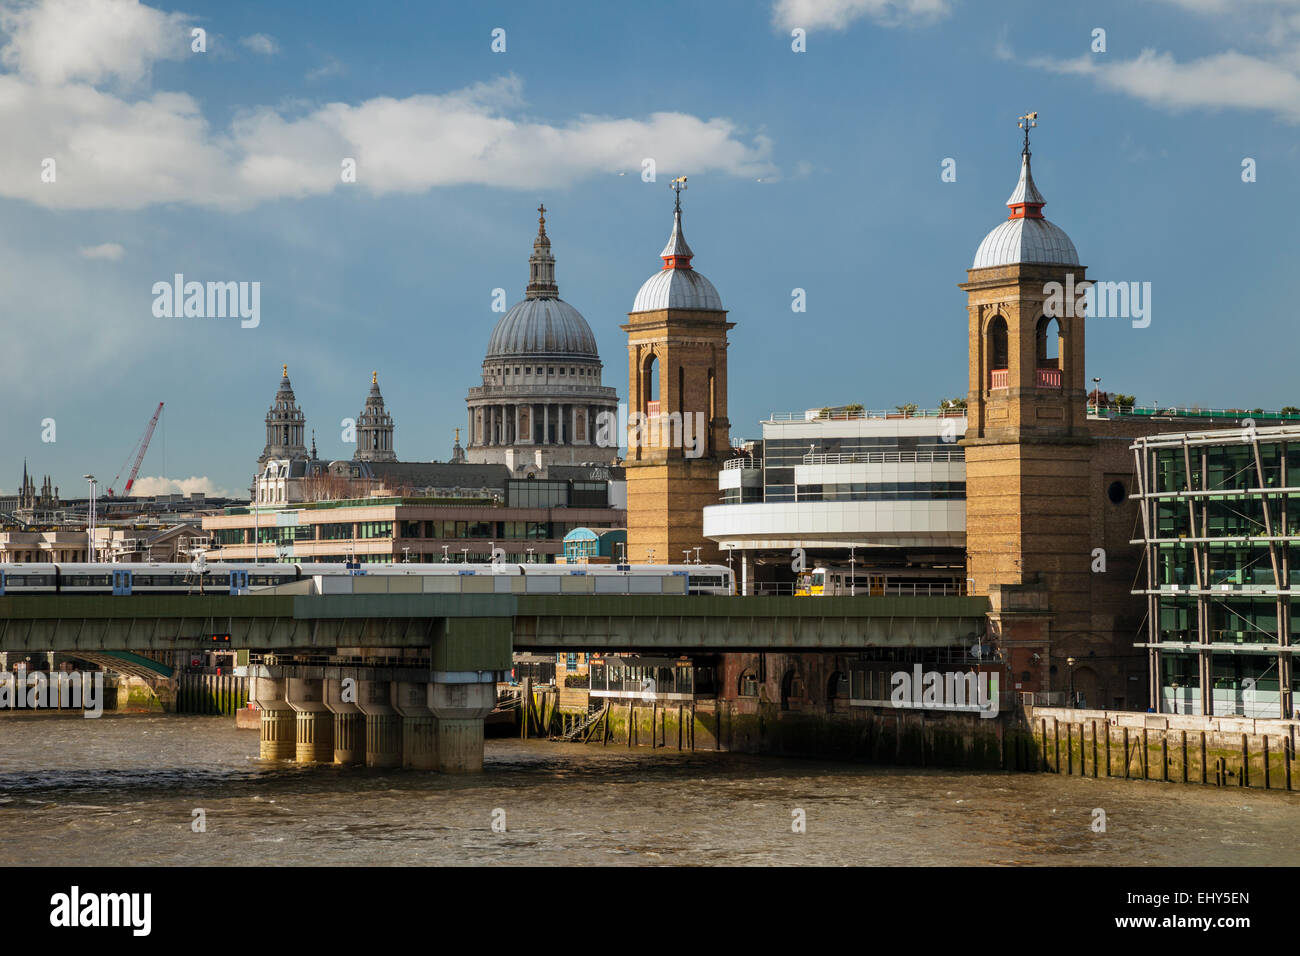 Cannon Street Railway Bridge in London. St Paul's Cathedral in the background. - Stock Image